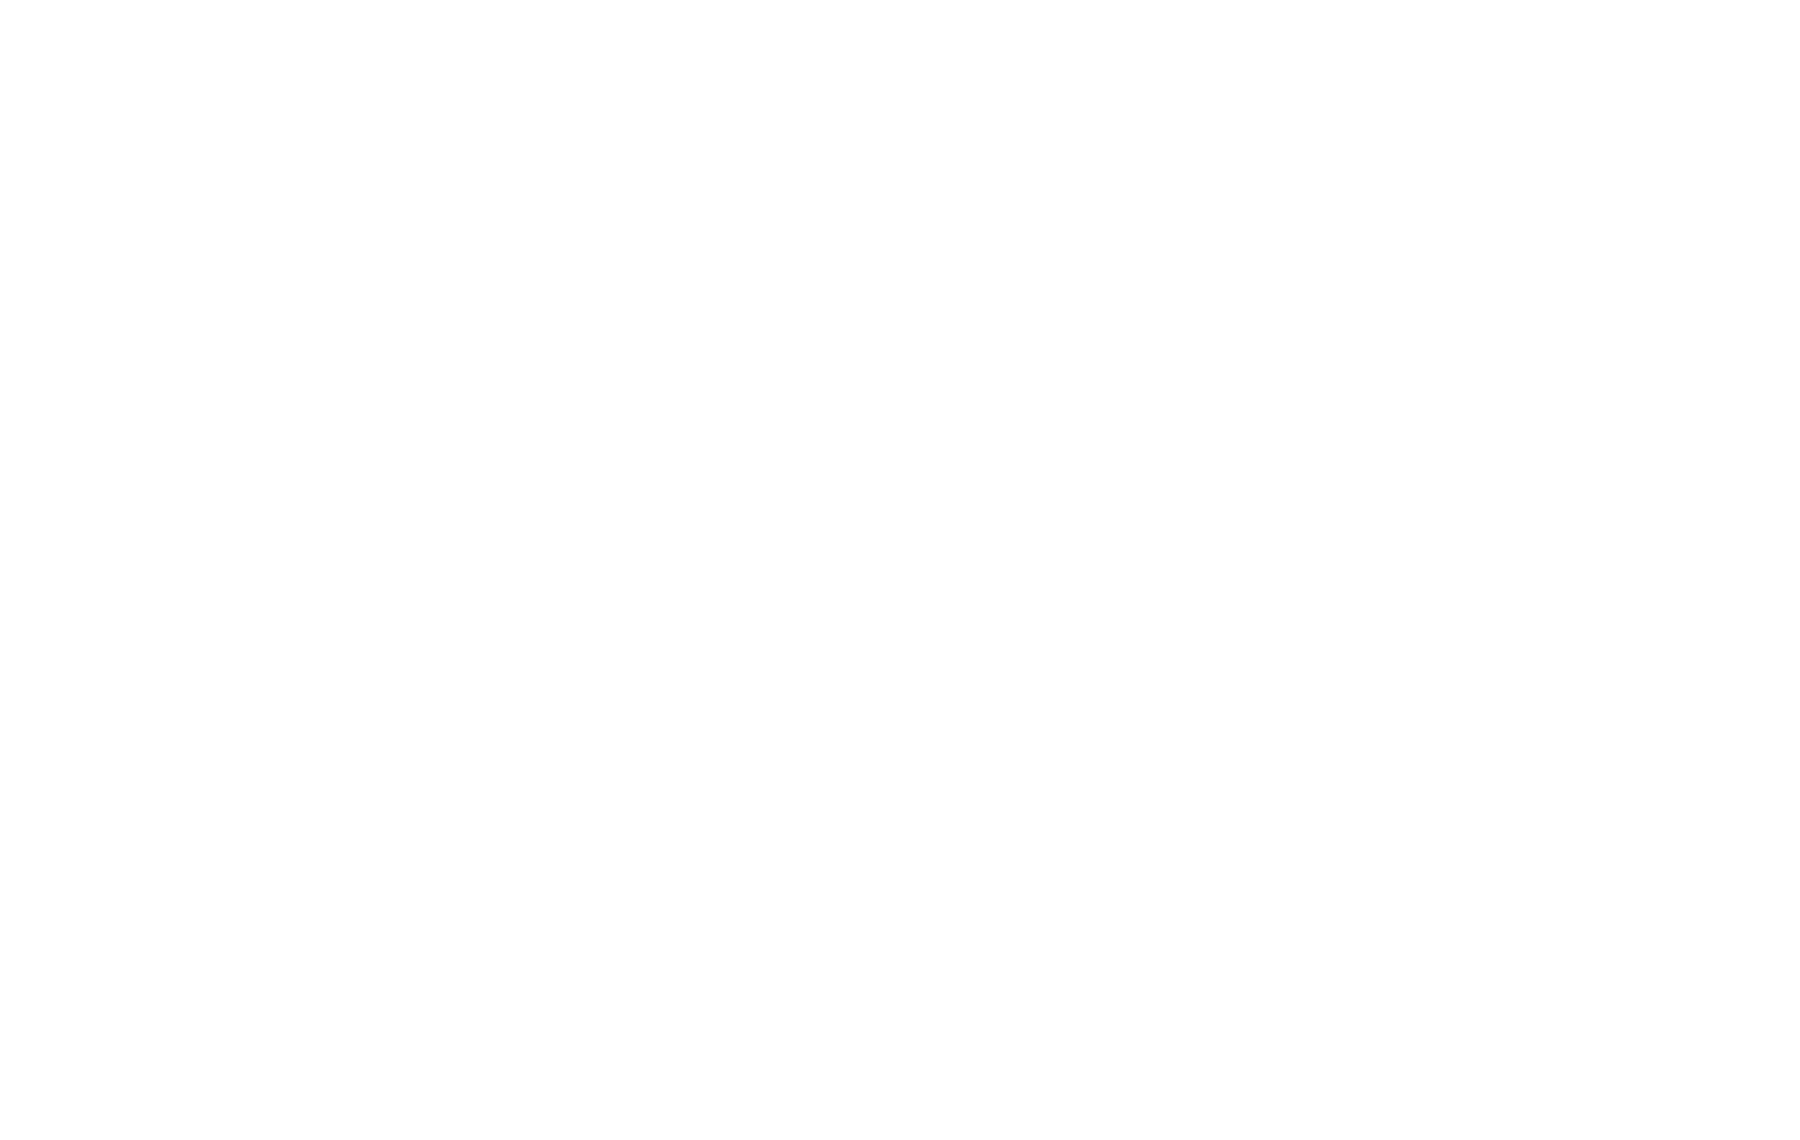 Welcome Back Congress